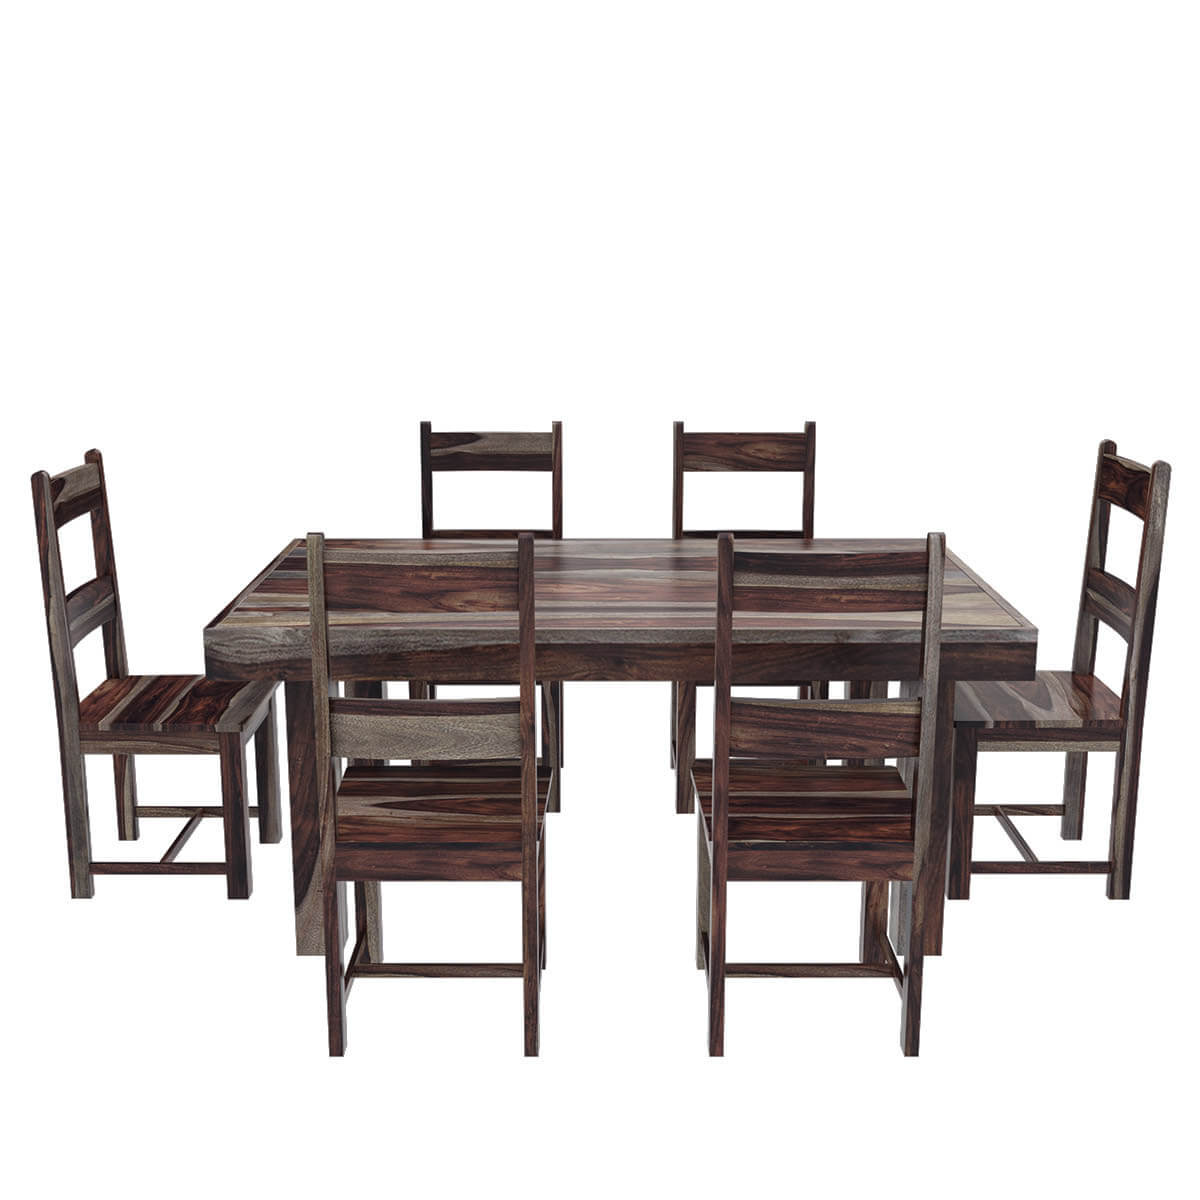 Frisco modern solid wood casual rustic dining room table for Dining room table chairs